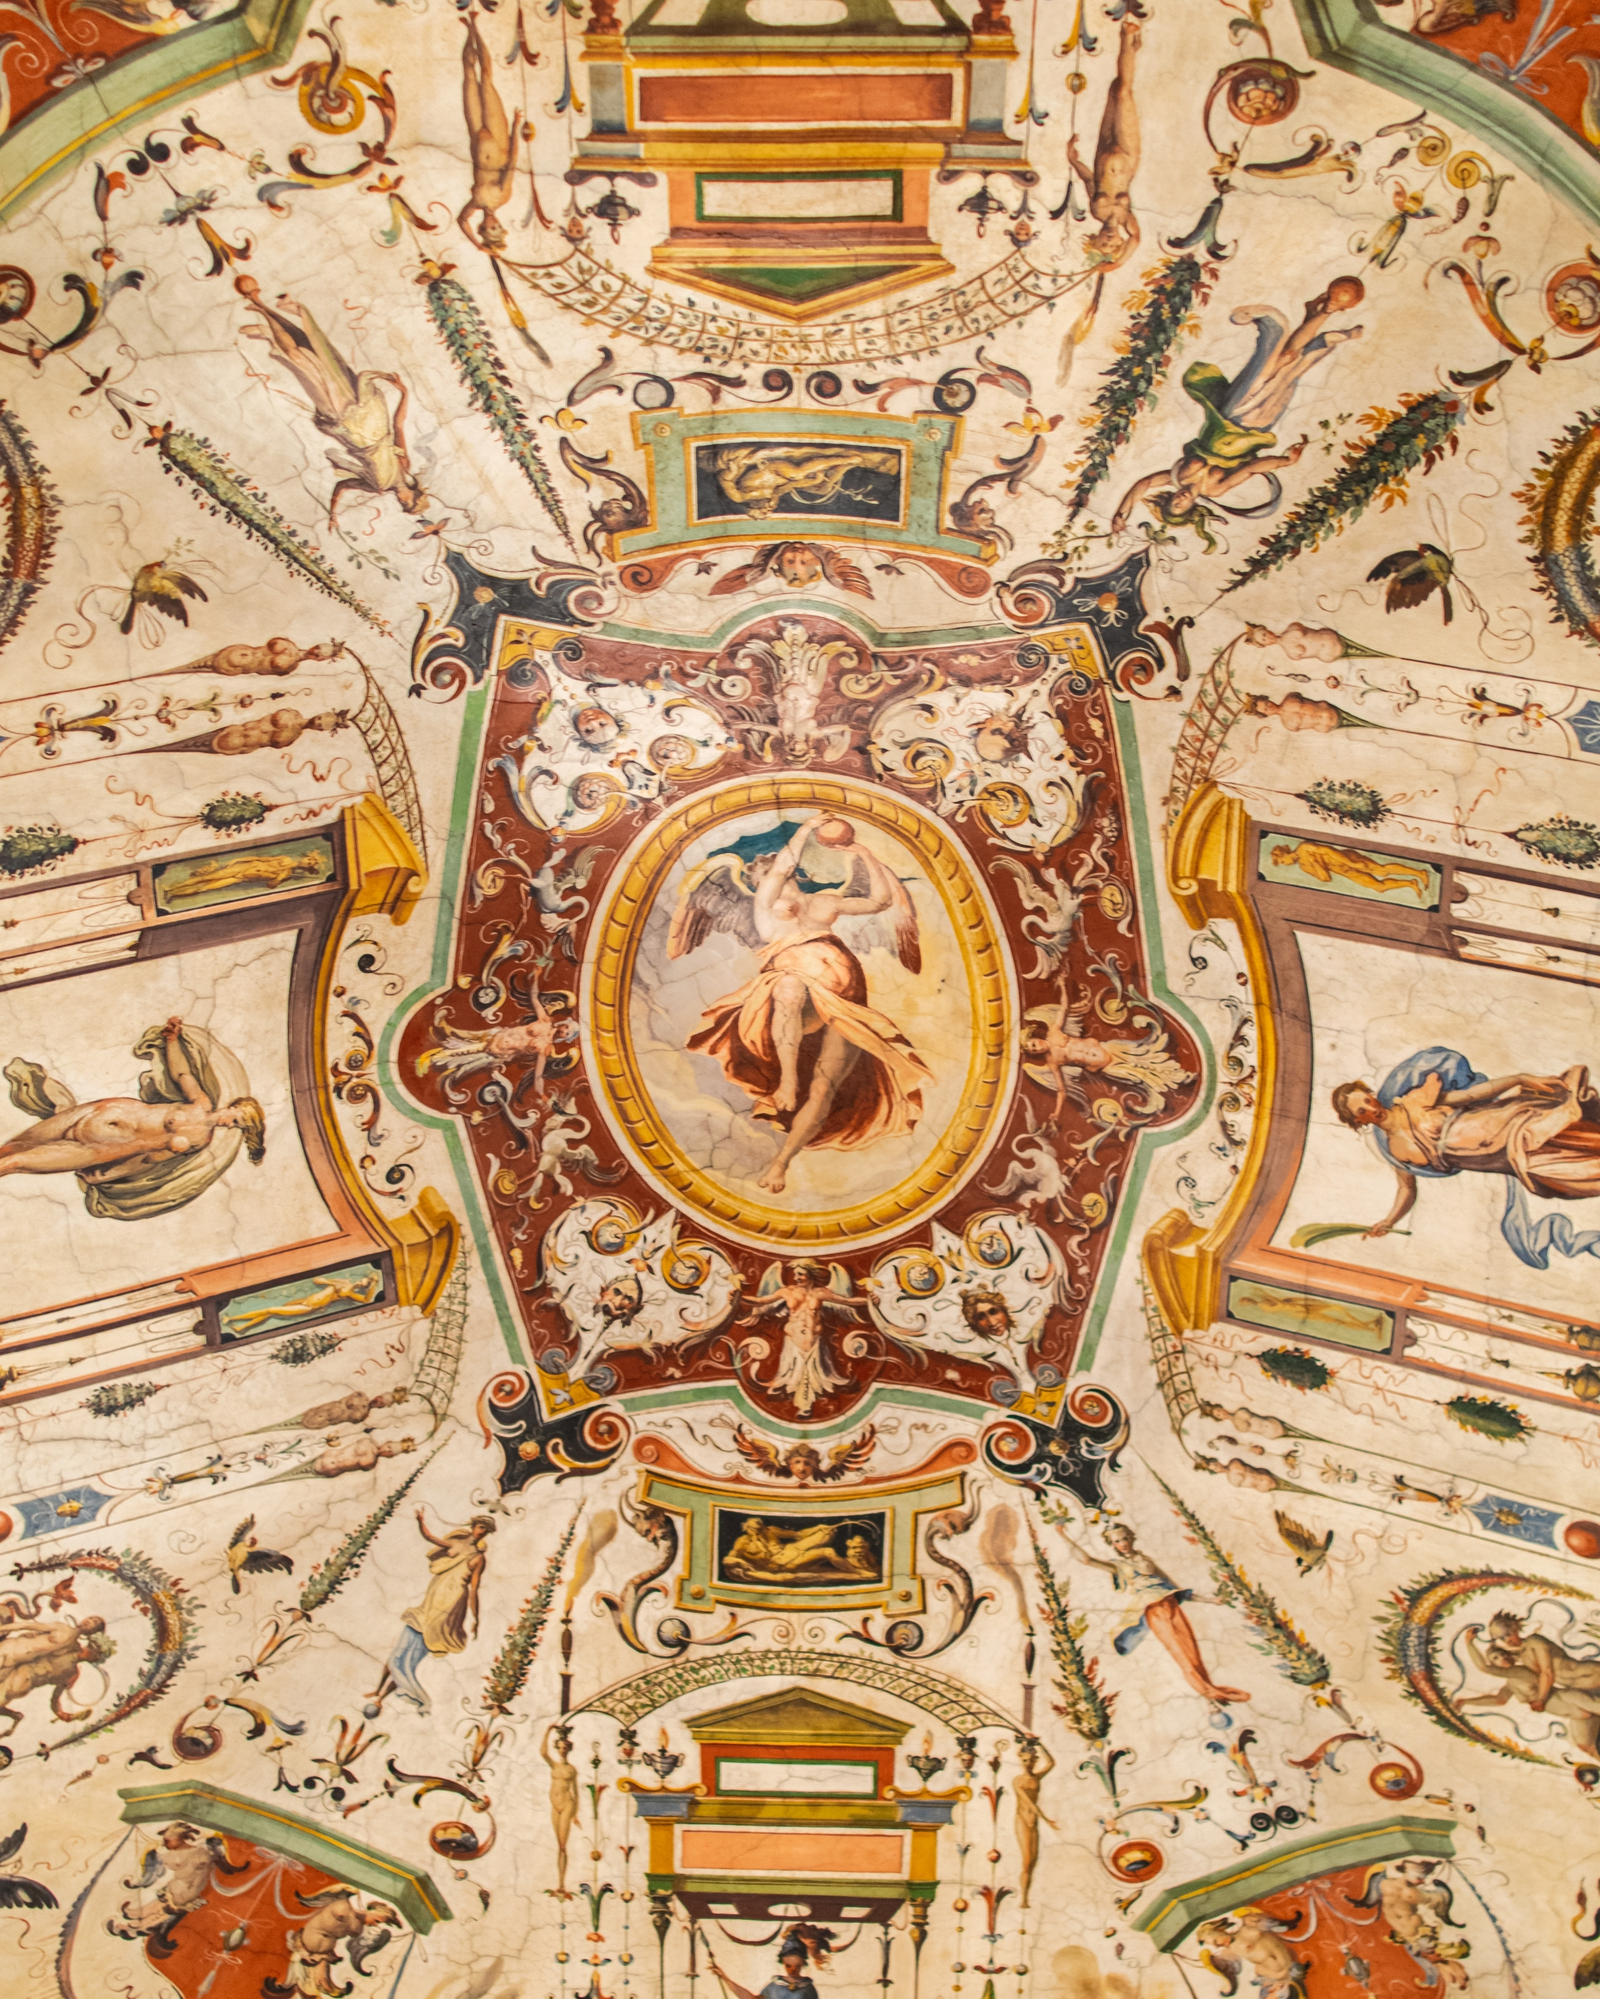 Museum Ceiling Artwork in Florence, Italy